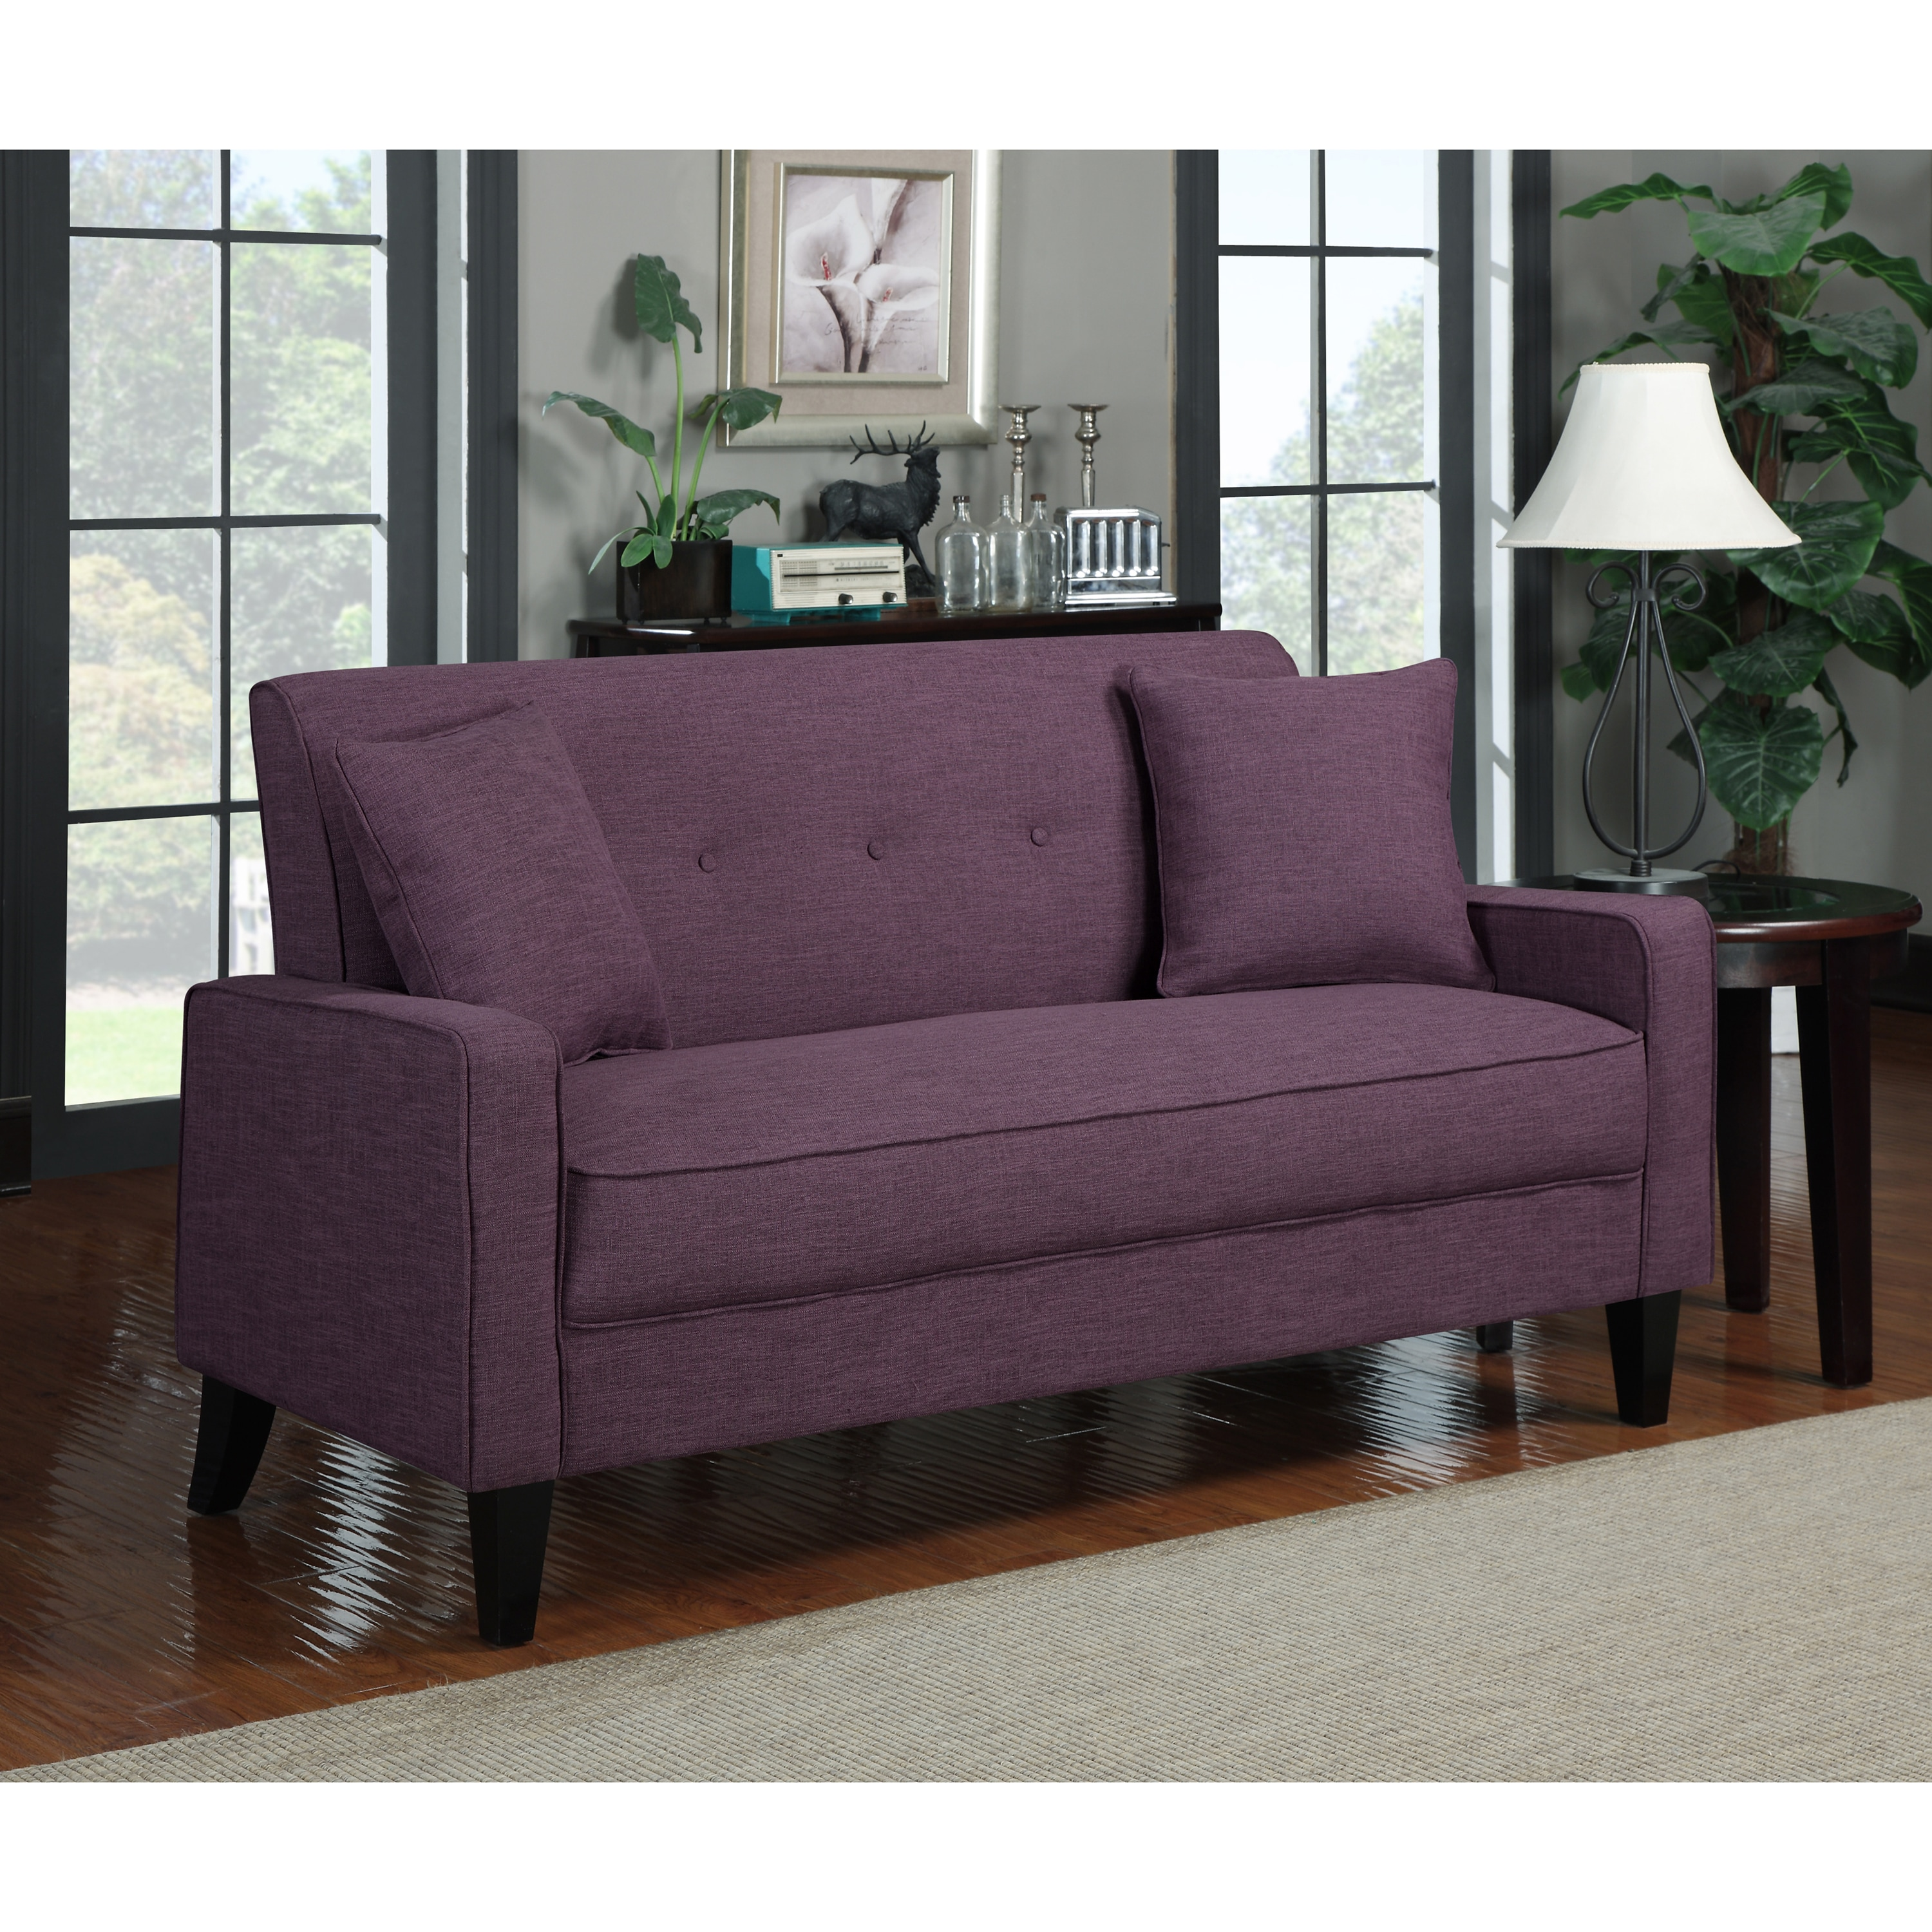 Portfolio Ellie Amethyst Purple Linen Sofa at Sears.com